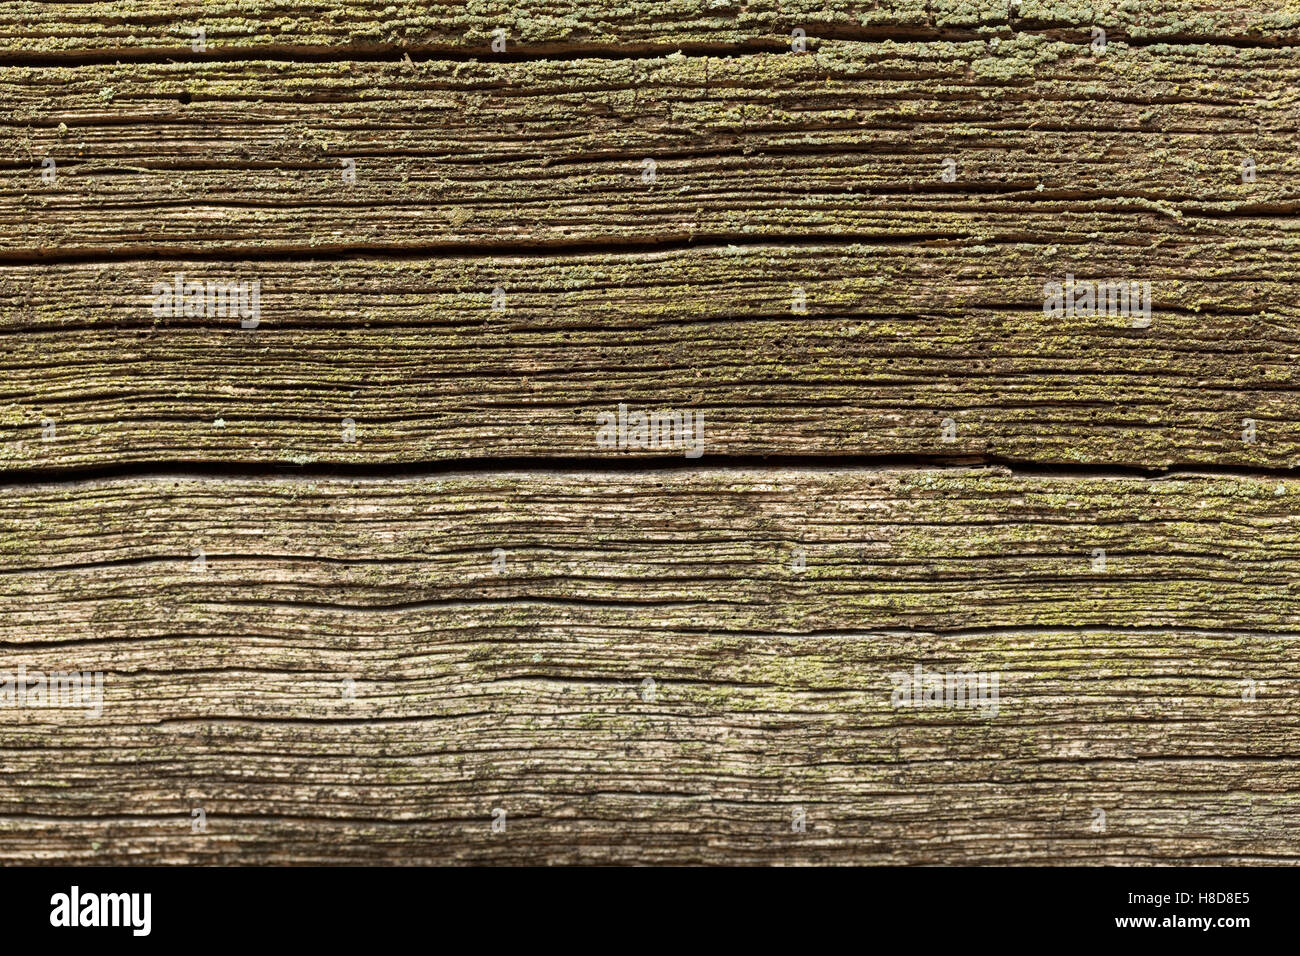 old black and porous plank as background - Stock Image